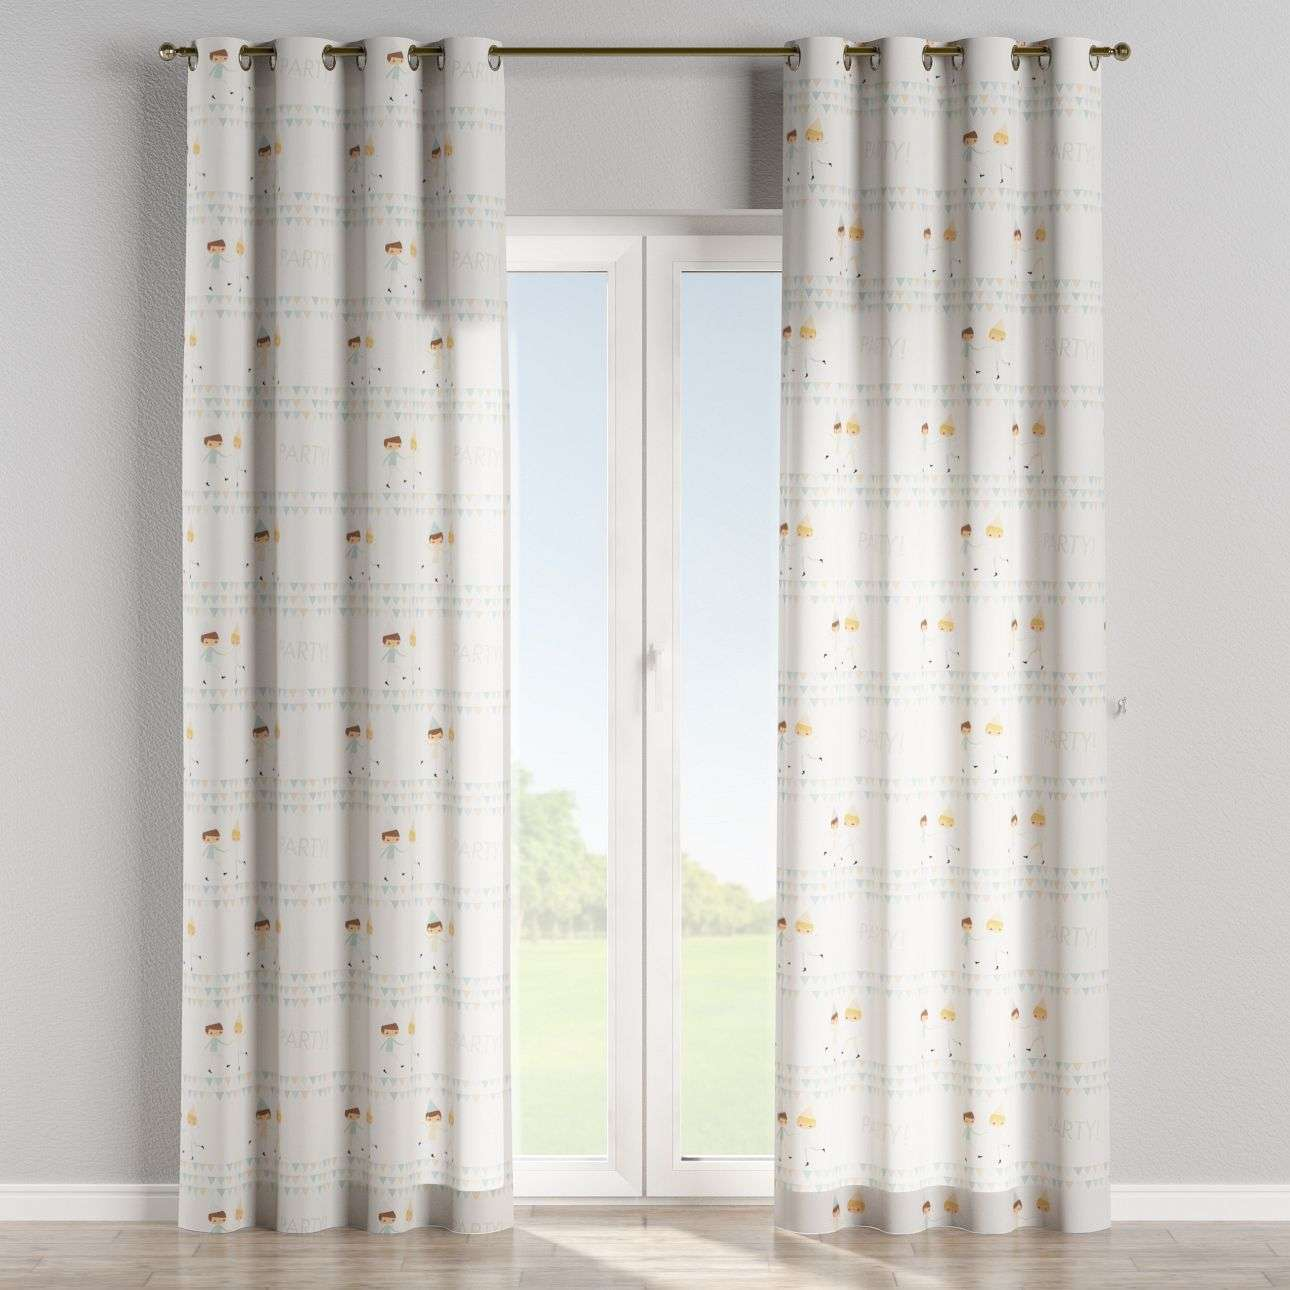 Eyelet curtains in collection Apanona, fabric: 151-01